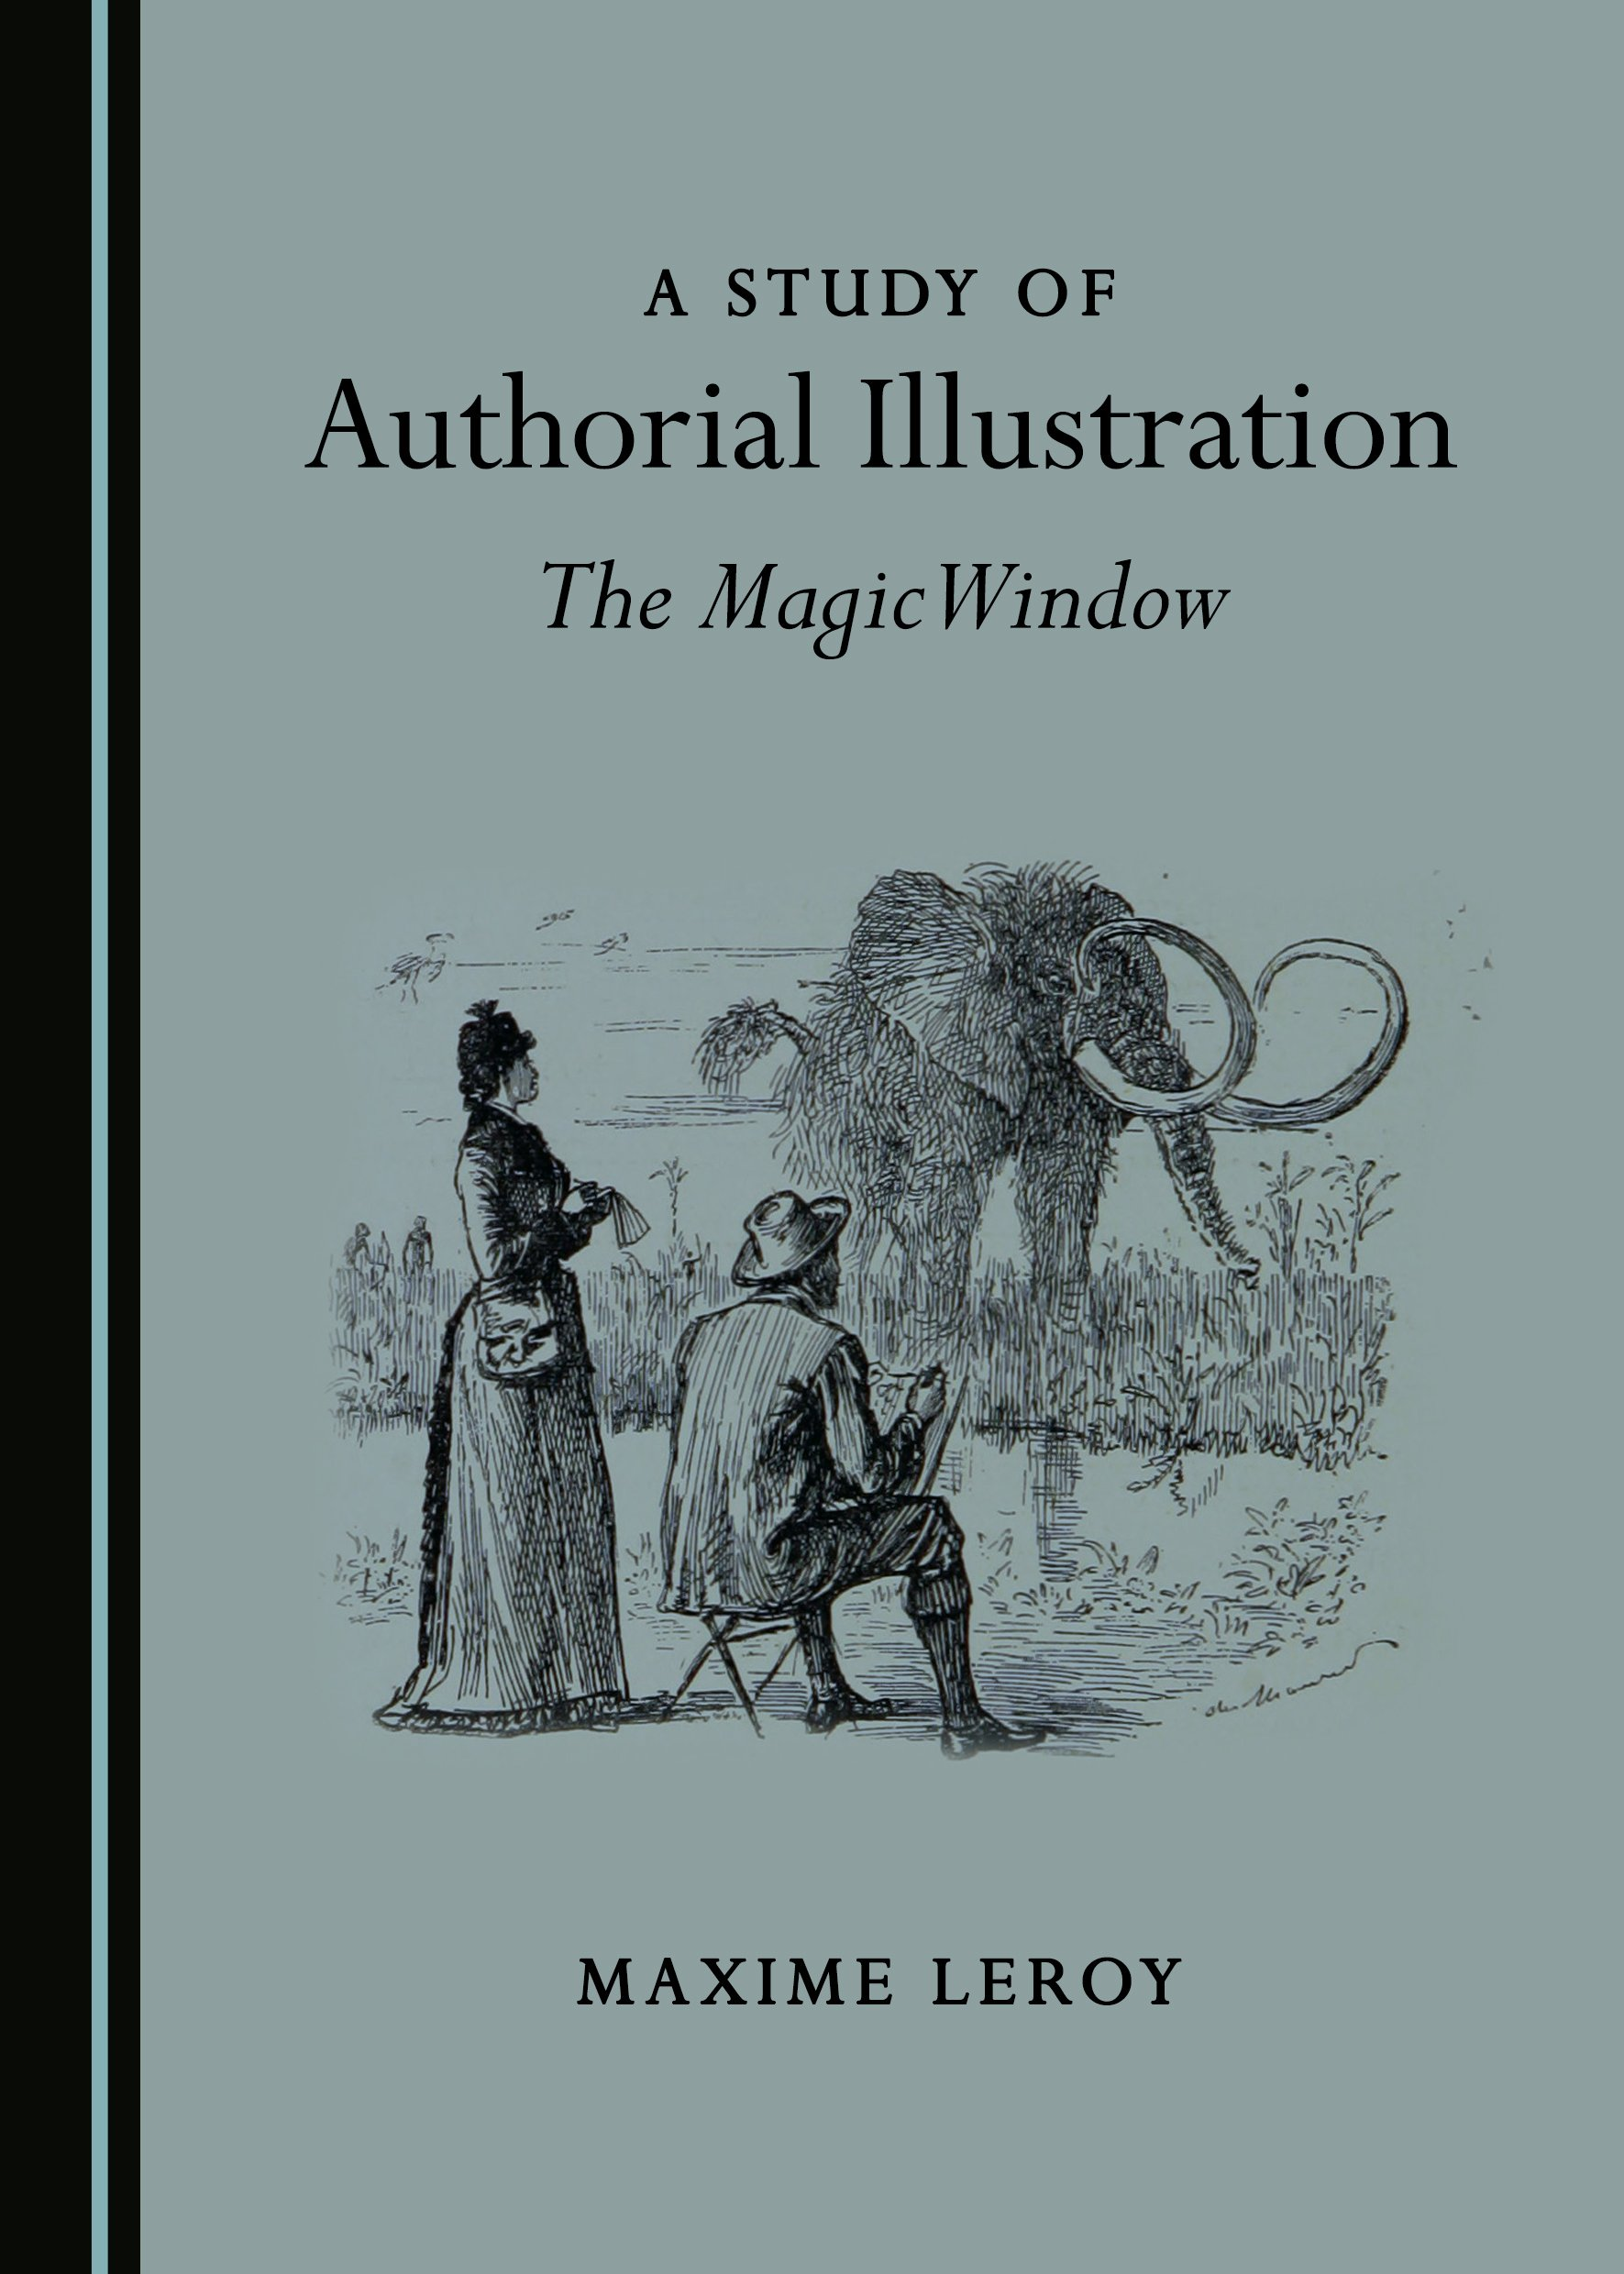 A Study of Authorial Illustration: The Magic Window